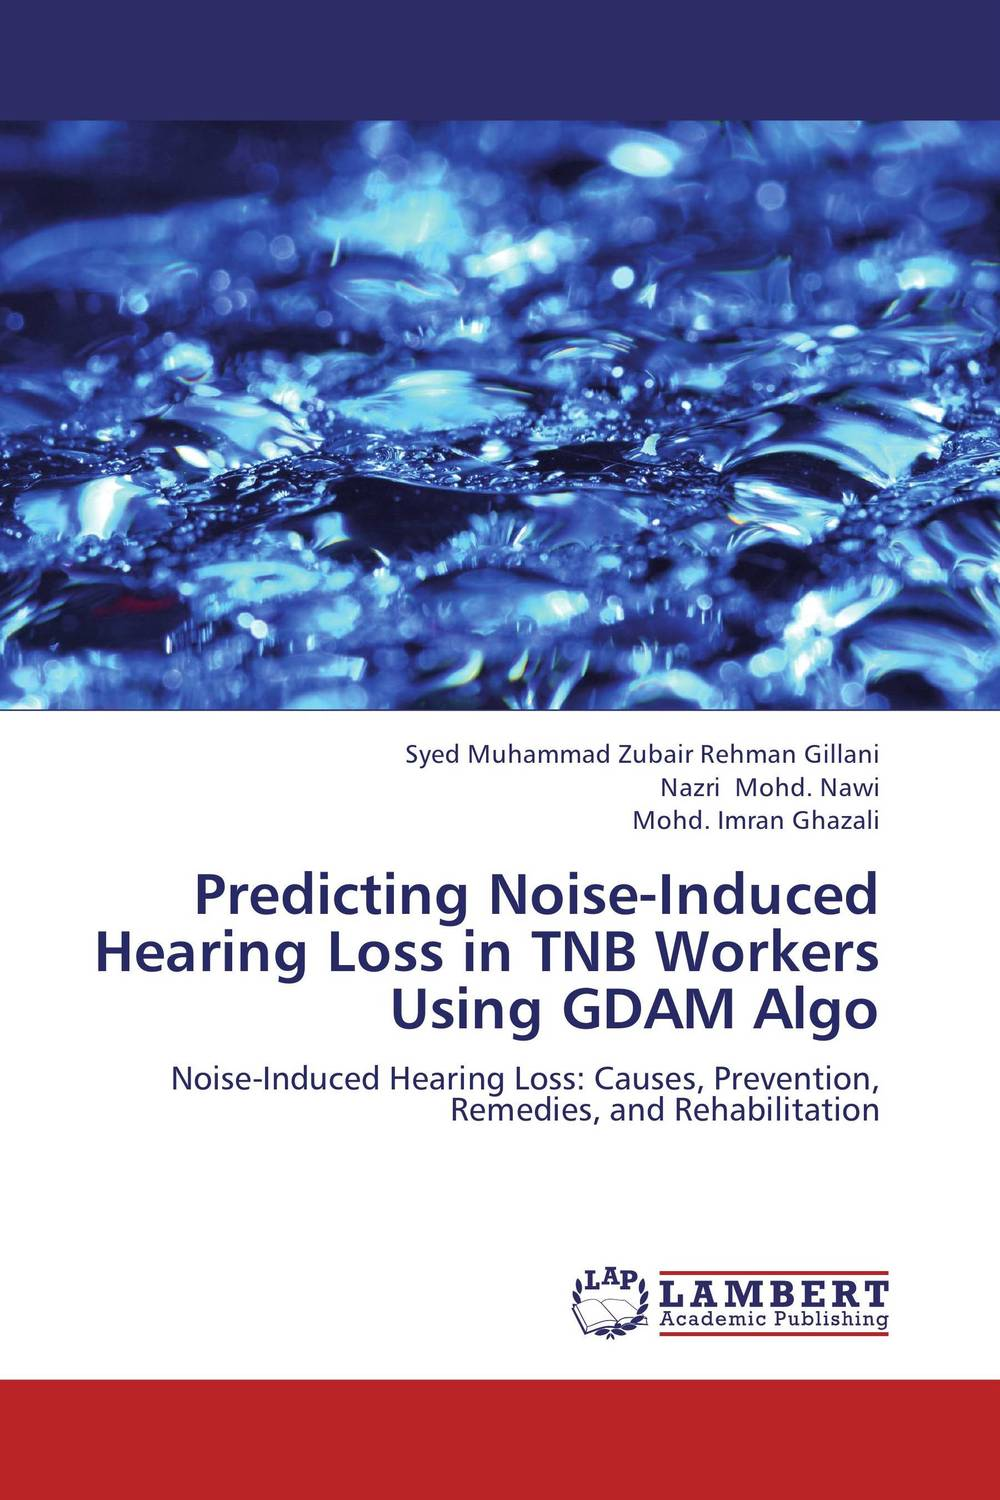 Predicting Noise-Induced Hearing Loss in TNB Workers Using GDAM Algo measuring glycemic variability and predicting blood glucose levels